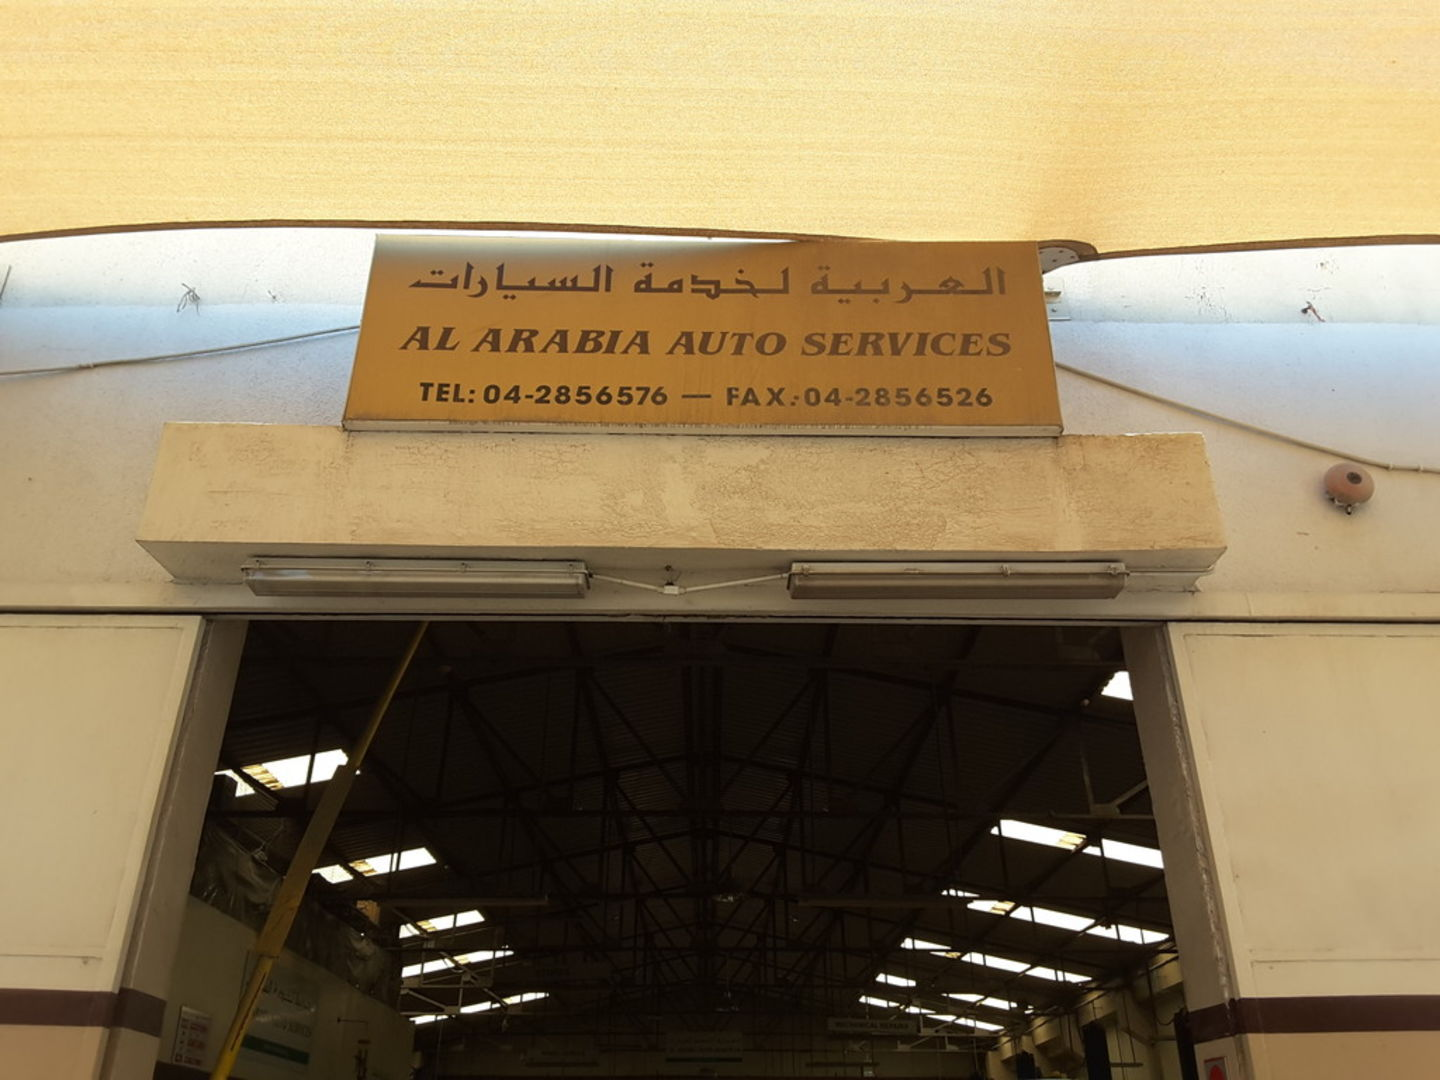 HiDubai-business-al-arabia-auto-services-transport-vehicle-services-auto-spare-parts-accessories-umm-ramool-dubai-2